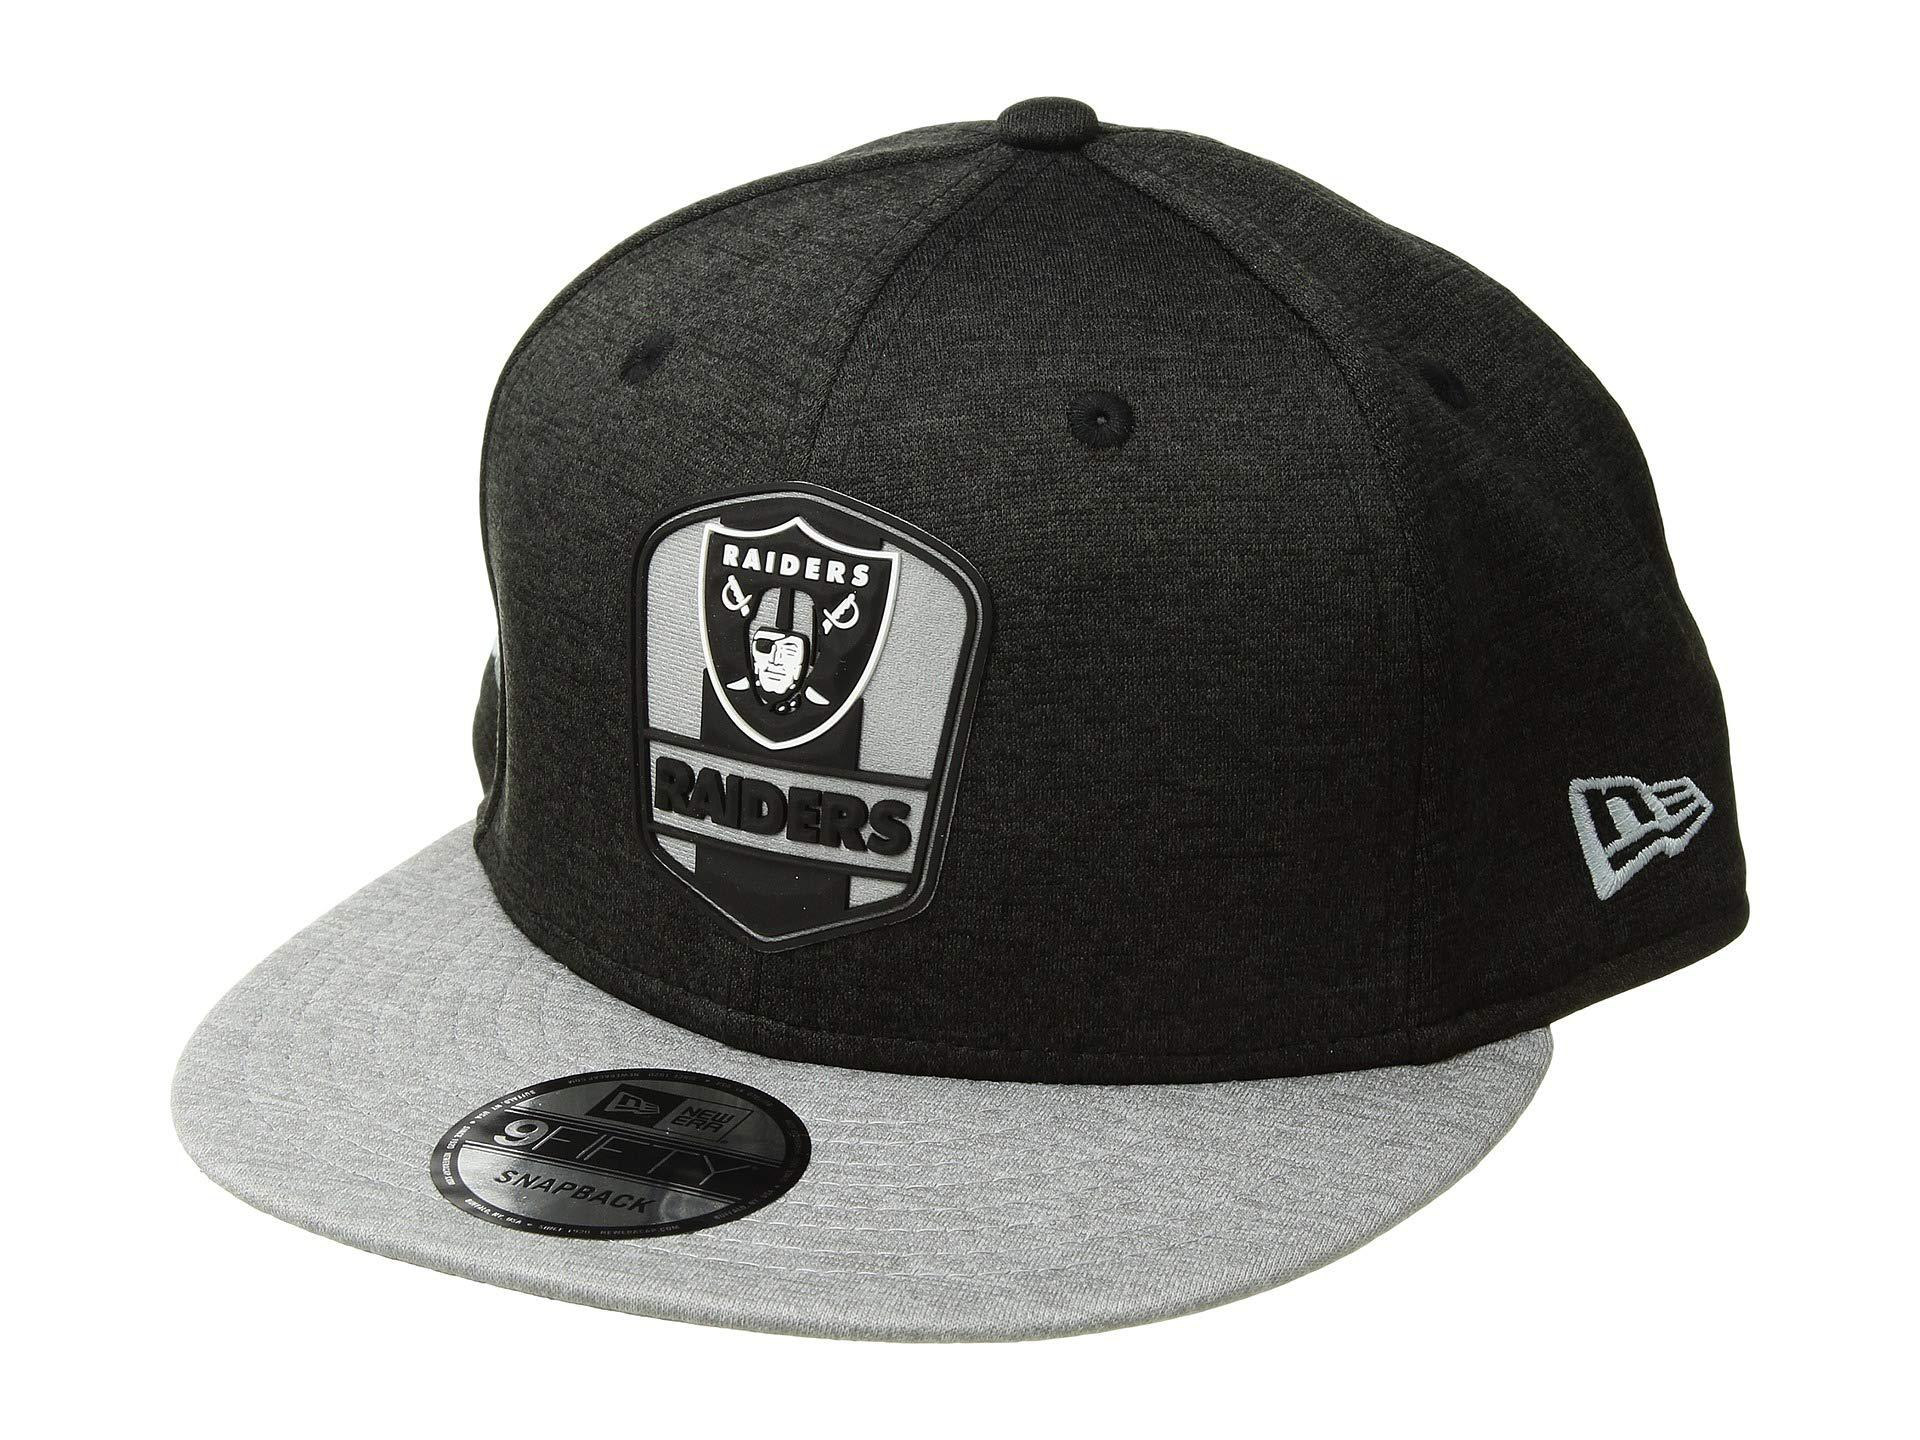 36e43b42eed Lyst - Ktz 9fifty Official Sideline Away Snapback - Oakland Raiders ...